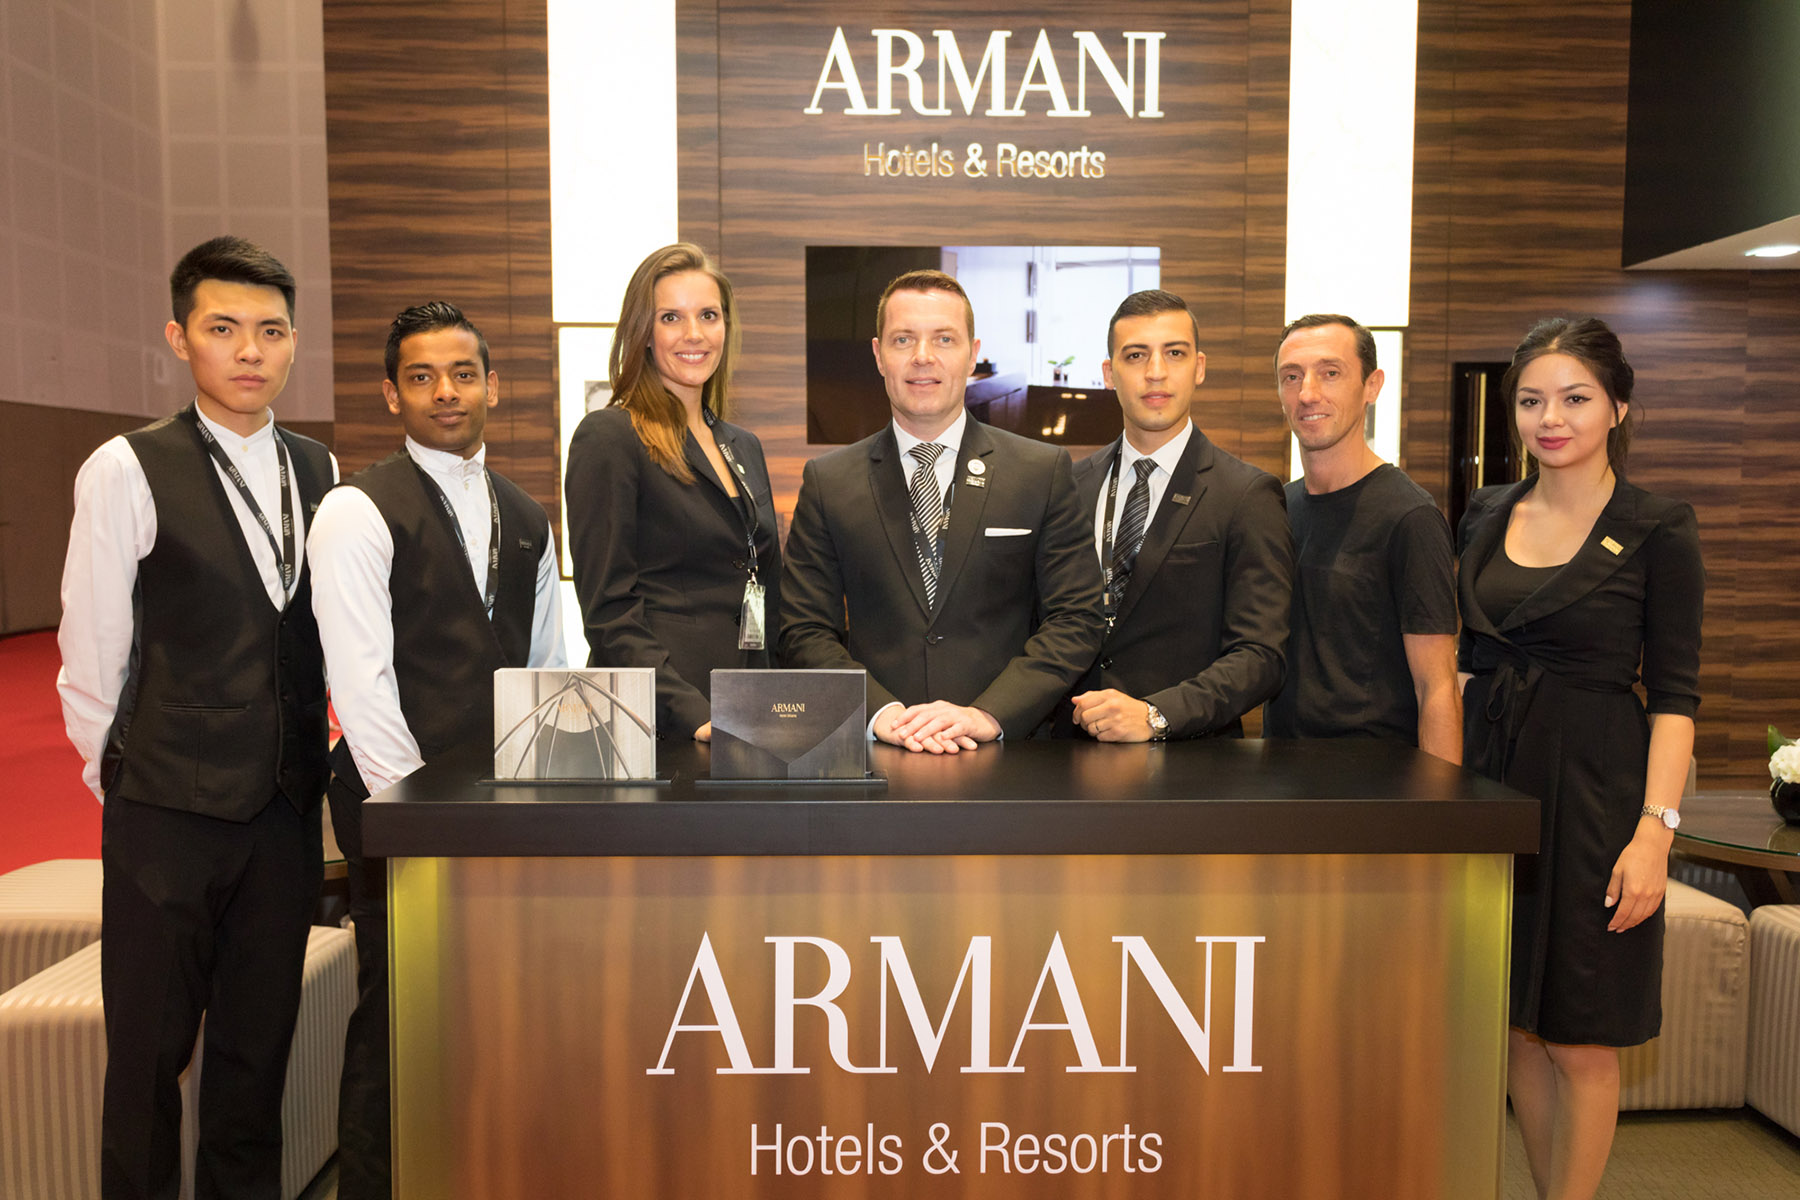 Armani Hotels & Resorts team at the stand by Loesje Kessels Fashion Photographer Dubai